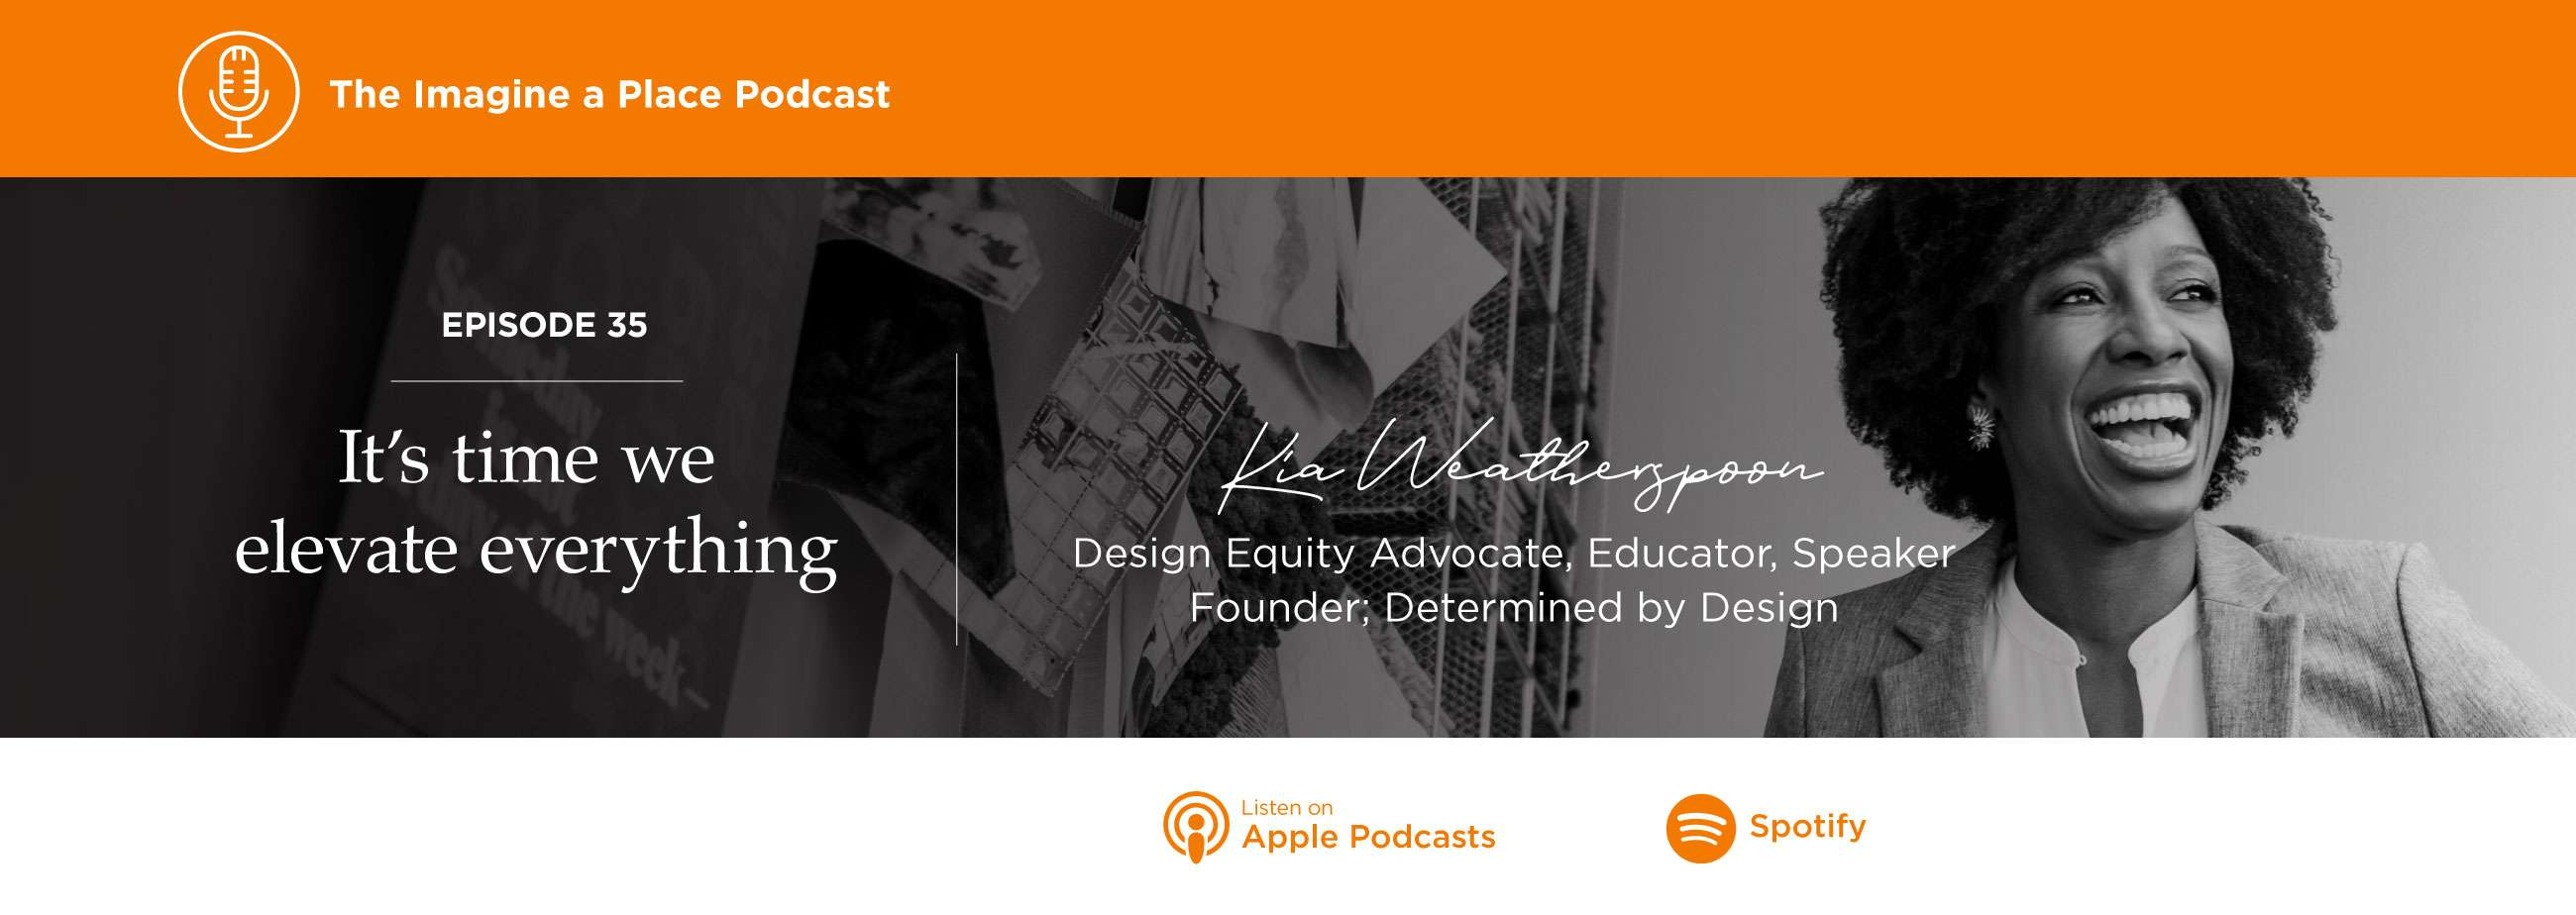 Imagine a Place Podcast with Kia Weatherspoon of Determined by Design